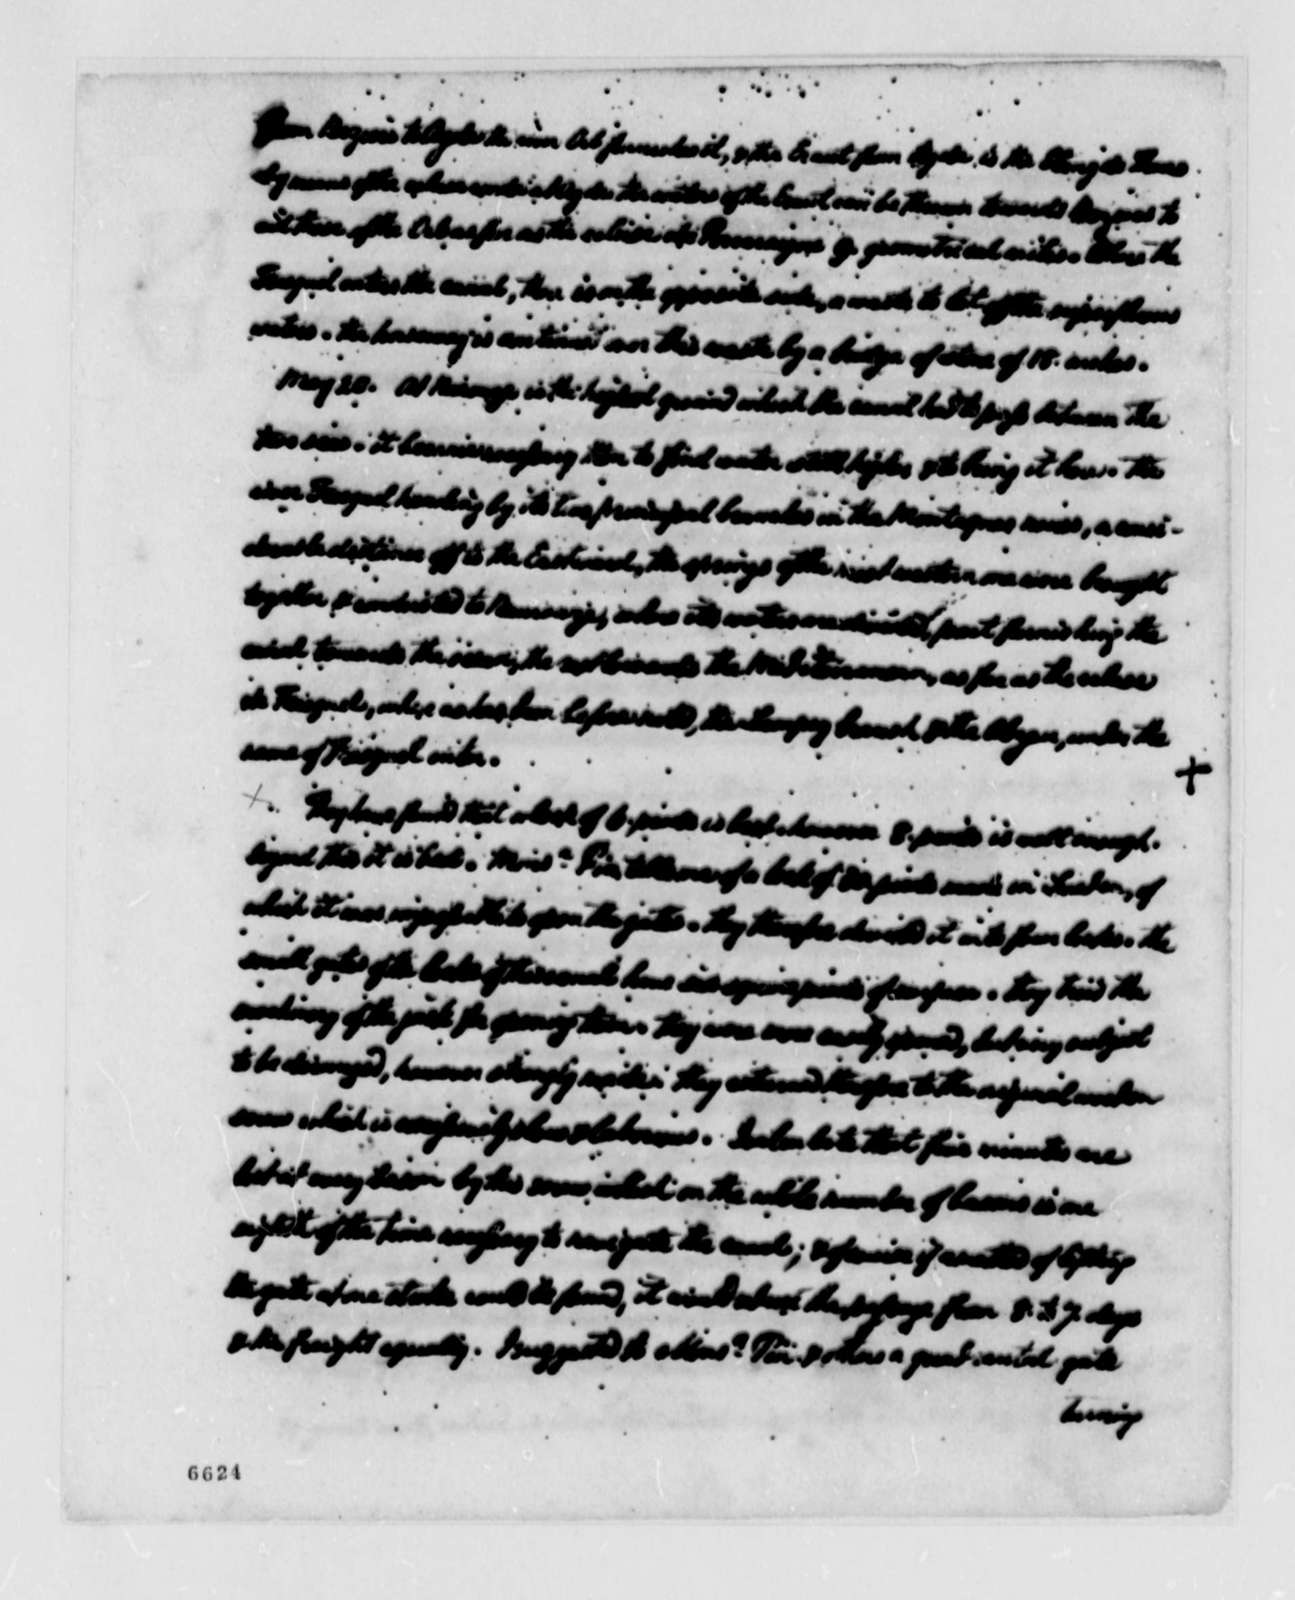 """Thomas Jefferson, May 15, 1787, """"Extract from notes made on a journey through the South of France 1787"""""""